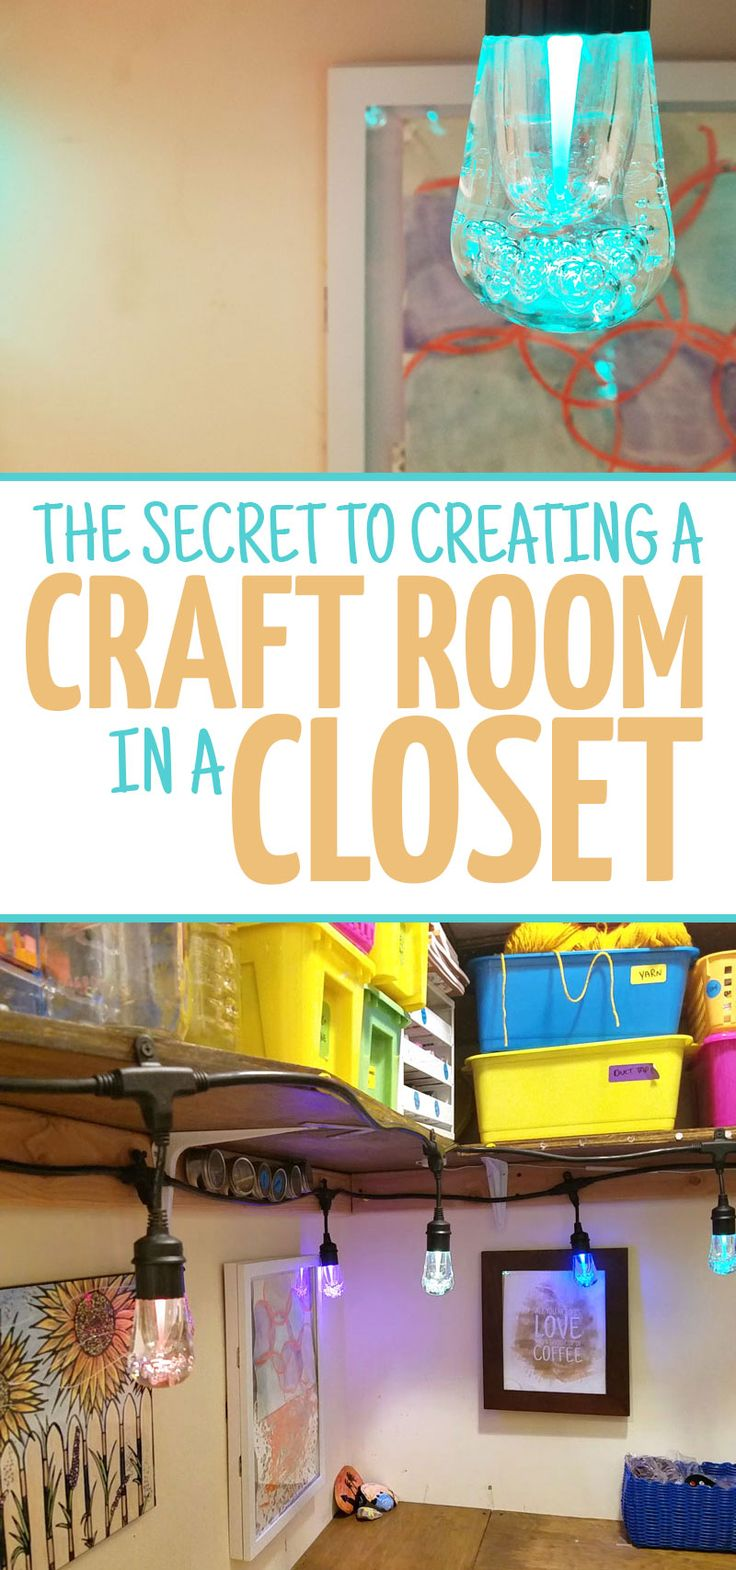 Check out the secret to making a craft room in a closet work - even though it's dark, claustrophobic, and, well, boring? This tip allows you to build a DIY craft room into a very small space such as a walk-in closet and still have it be functional - you'll love these craft room ideas especially for lighting! Sponsored by @Jascoproducts Enbrighten  #ColorCafeLights